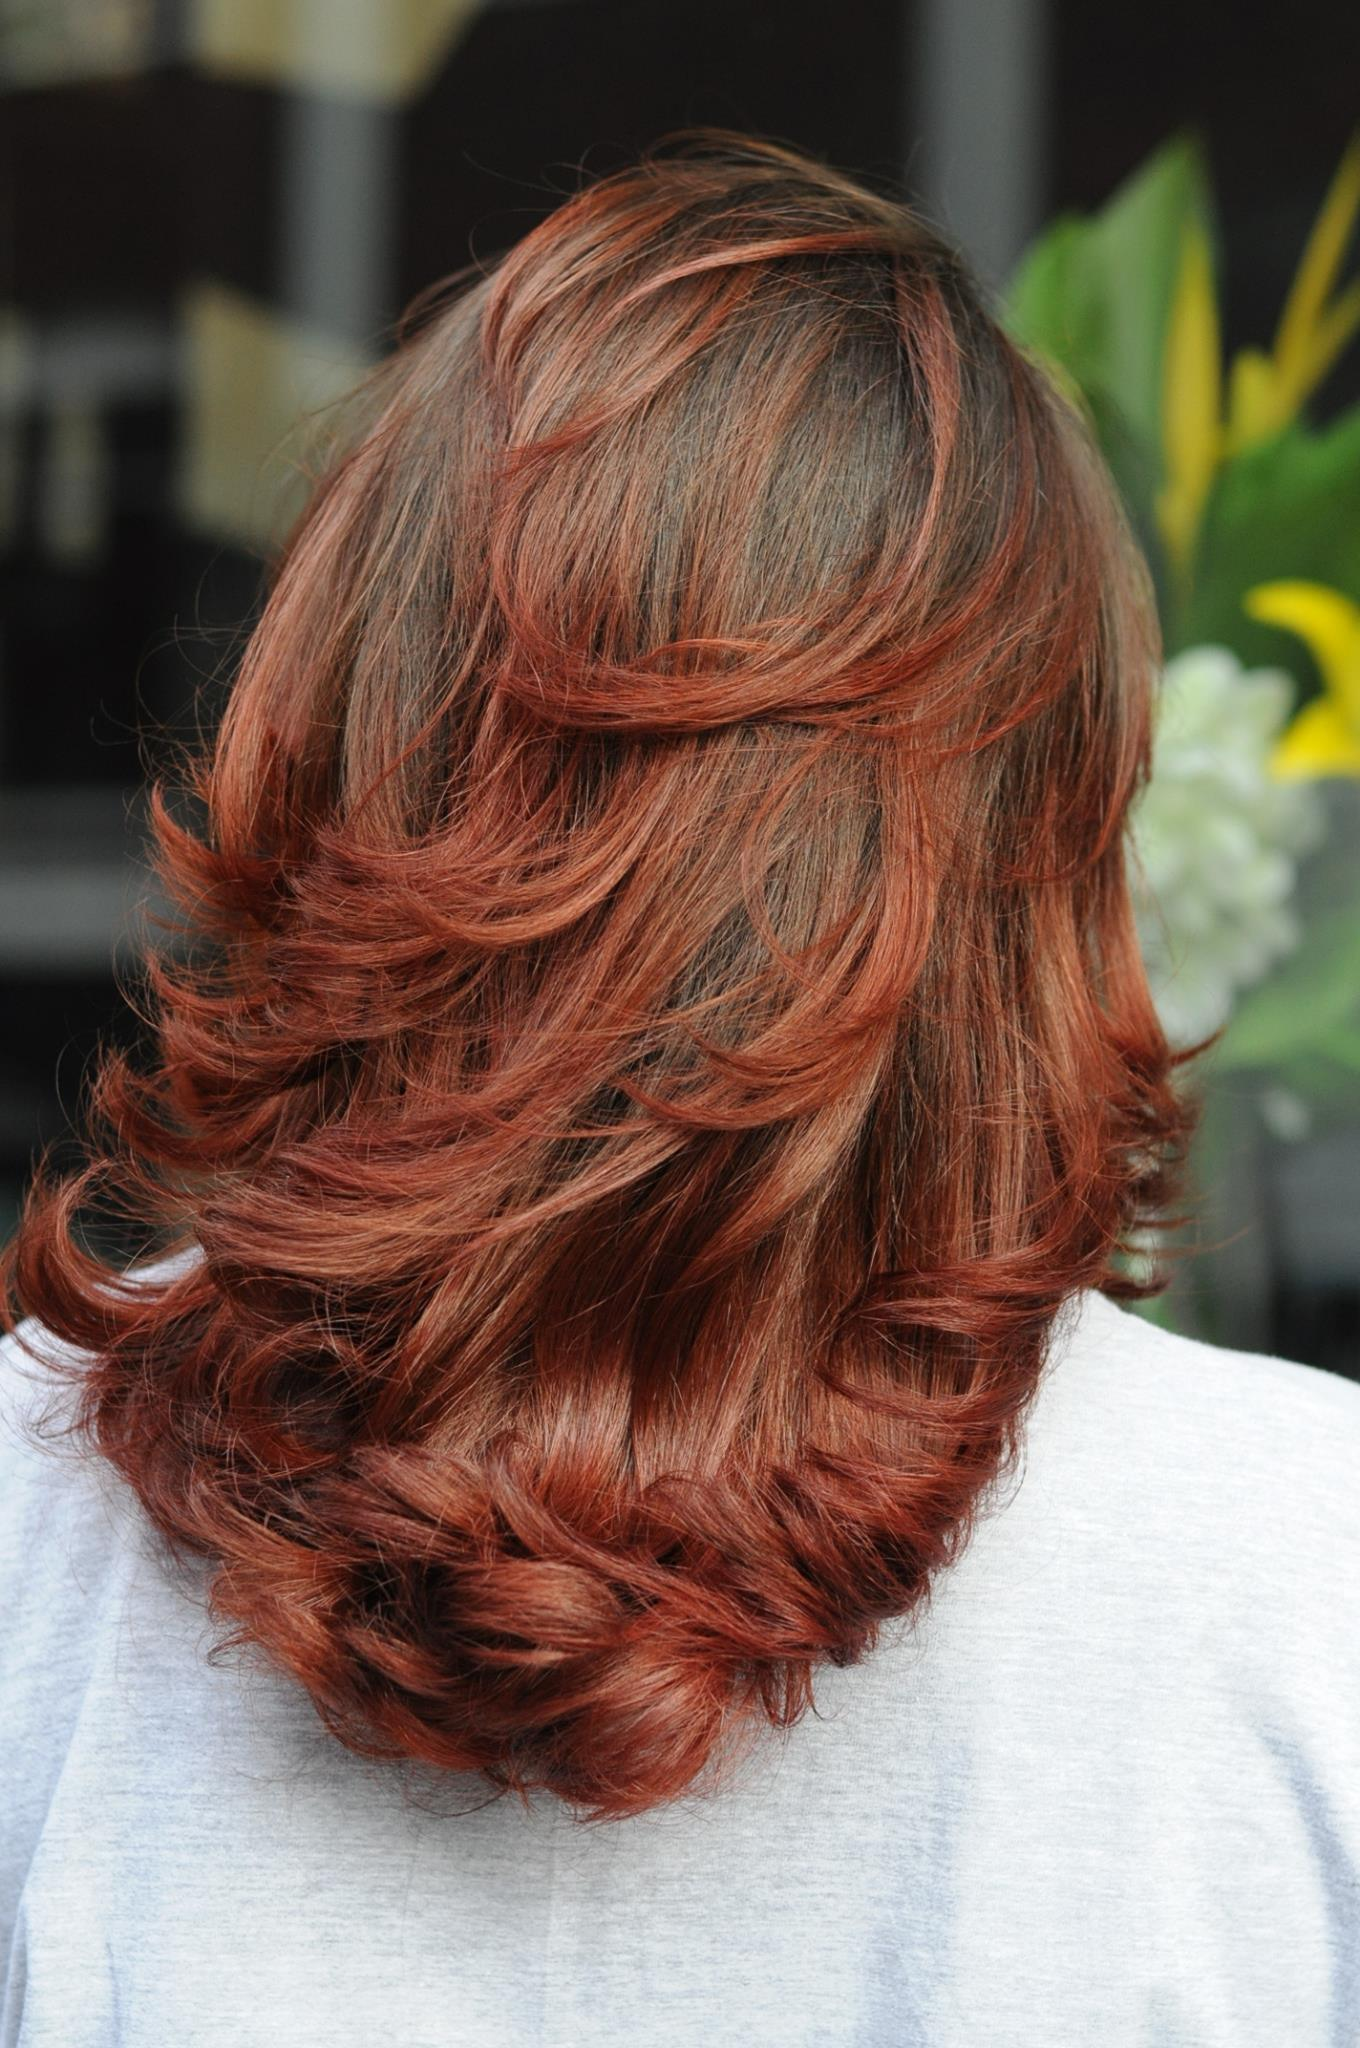 The client's very first hair colour. Natural dark brown fired up a little with beautiful dark red balayage